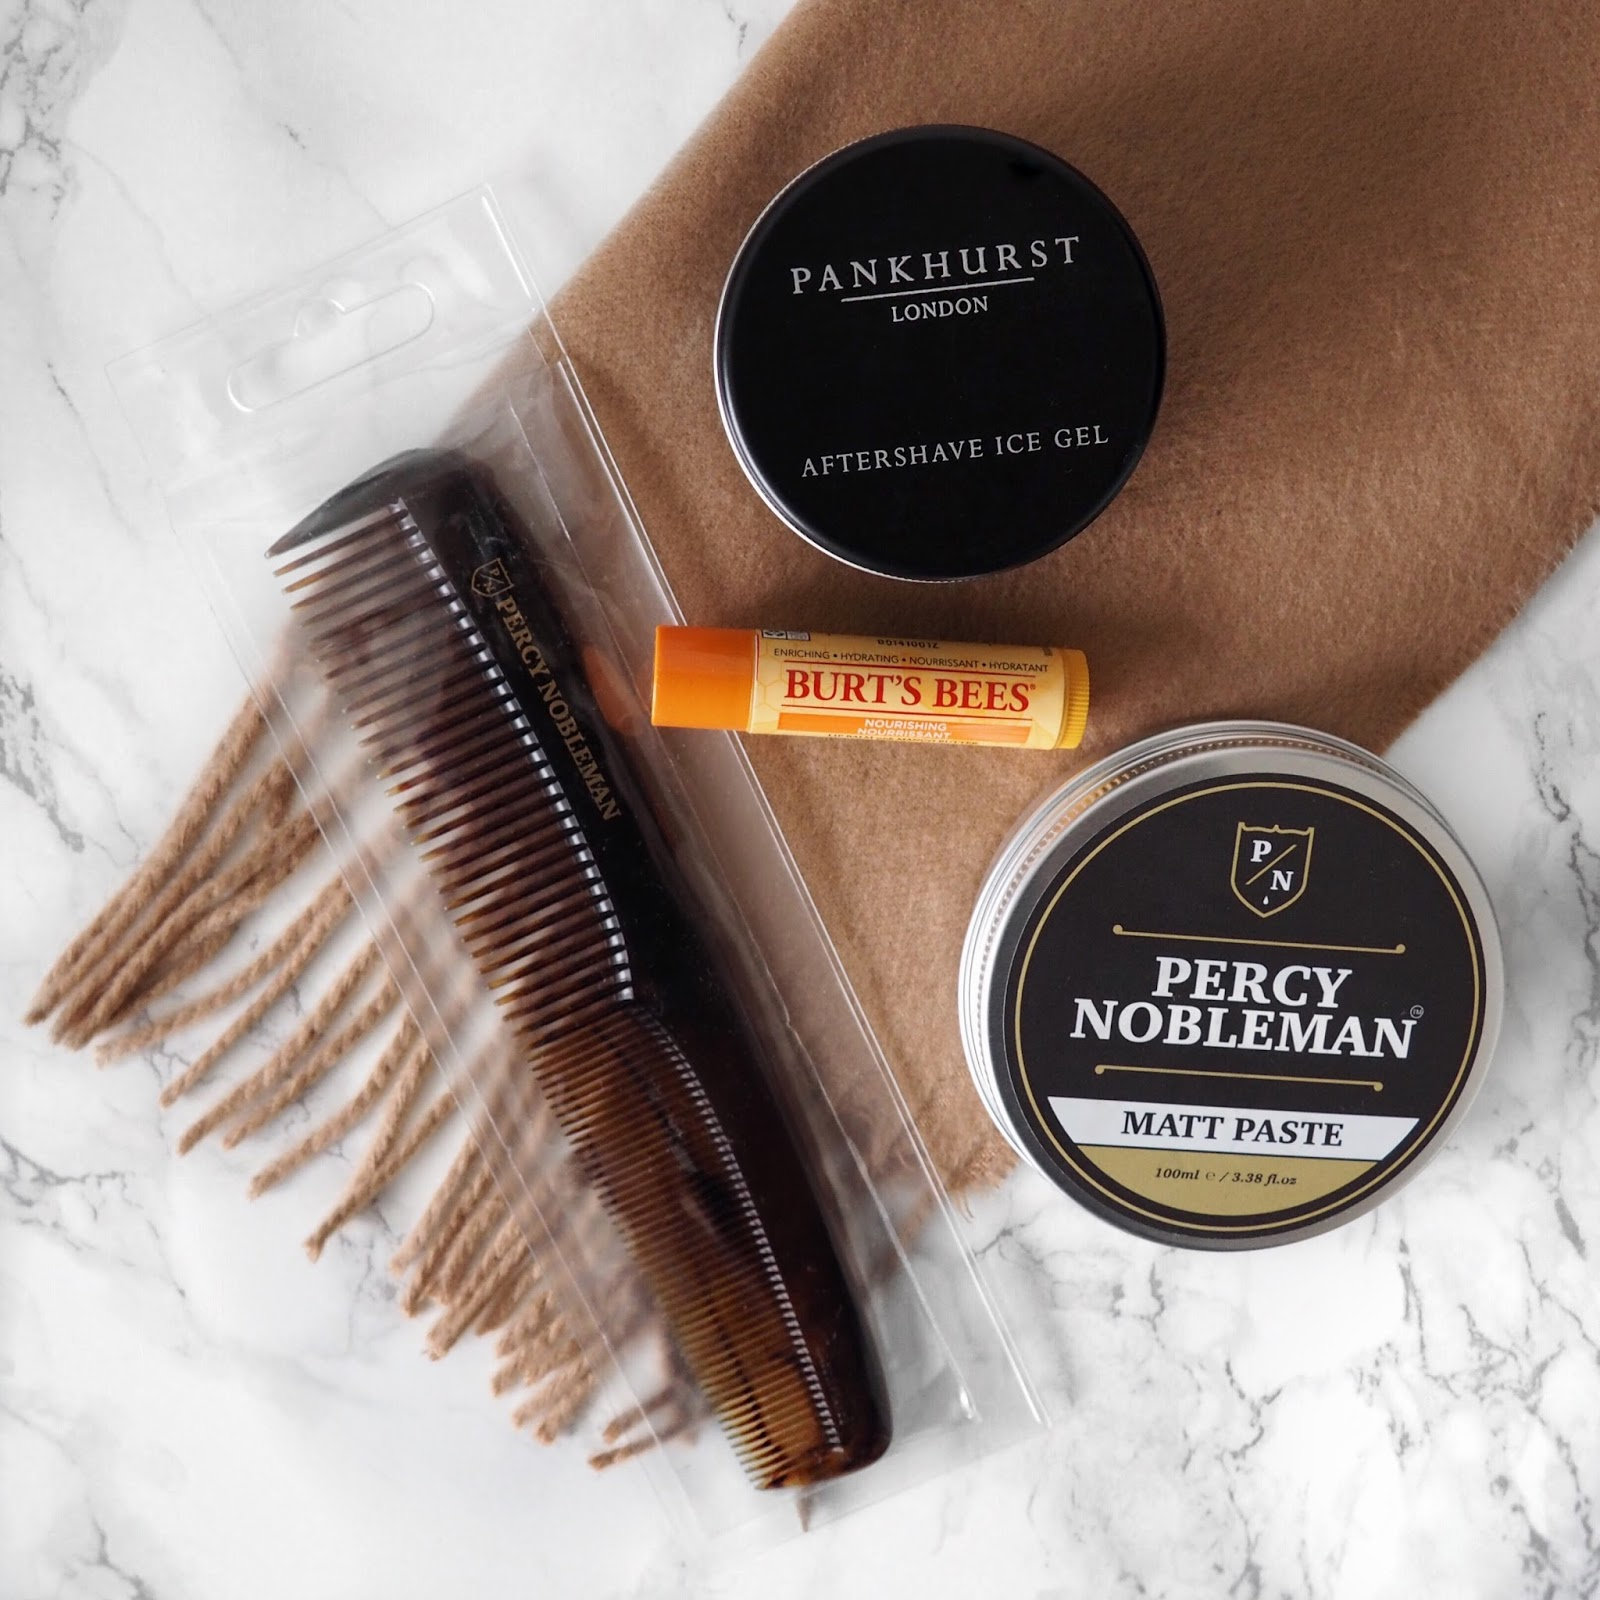 Salman Dean's Grooming Giveaway With Percy Nobleman, Pankhurst & Burt's Bees